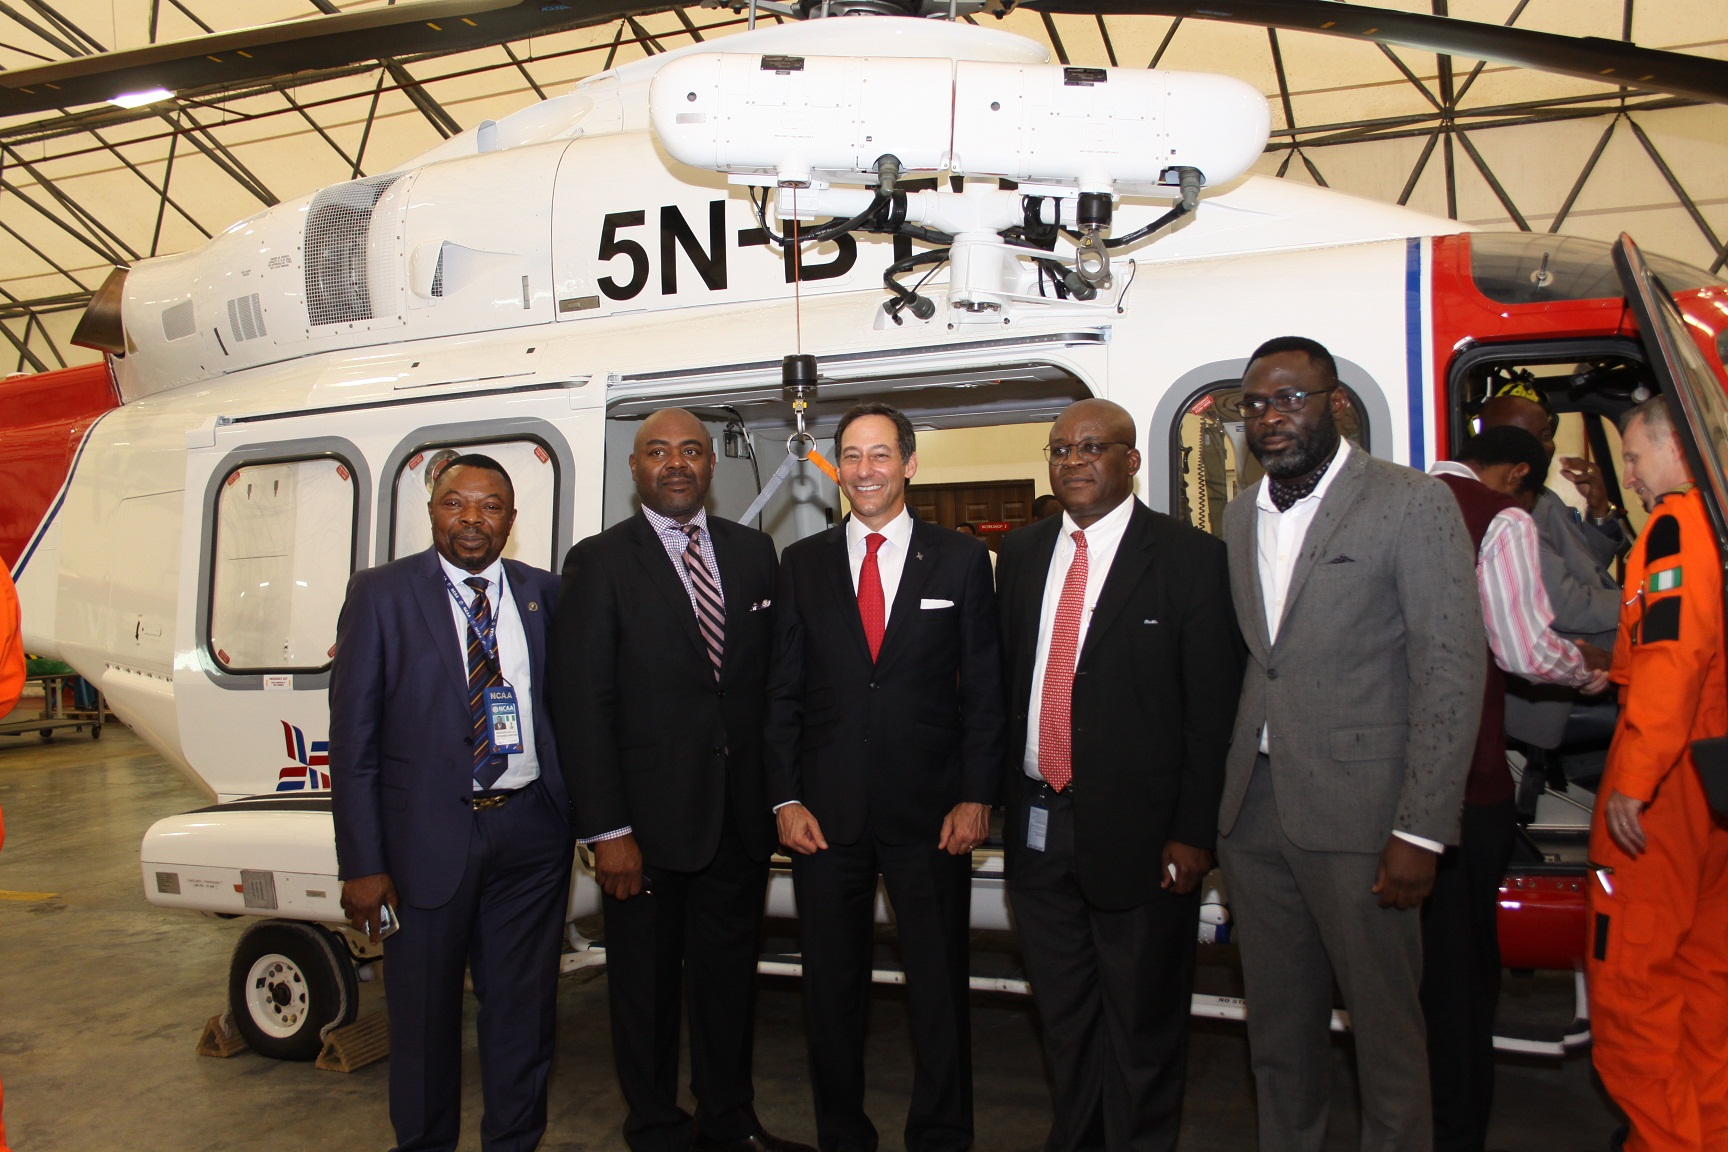 L-R: Mr. Joyce Nkemakolam, Director, Aerodrome & Airspace Standards, Nigeria Civil Aviation Authority (NCAA); Mr. Lawrence Fubara-Anga, Chairman, Bristow Helicopters Nigeria Ltd; Mr. Jonathan Baliff, President/Chief Executive Officer, Bristow Group; Capt. Akin Oni, Managing Director, Bristow Nigeria & Interim Regional Director, Africa and Capt. Alex Oshomah at the launch of the Bristow Helicopters Rescue and Recovery Service (RRS) in Nigeria yesterday in Lagos.